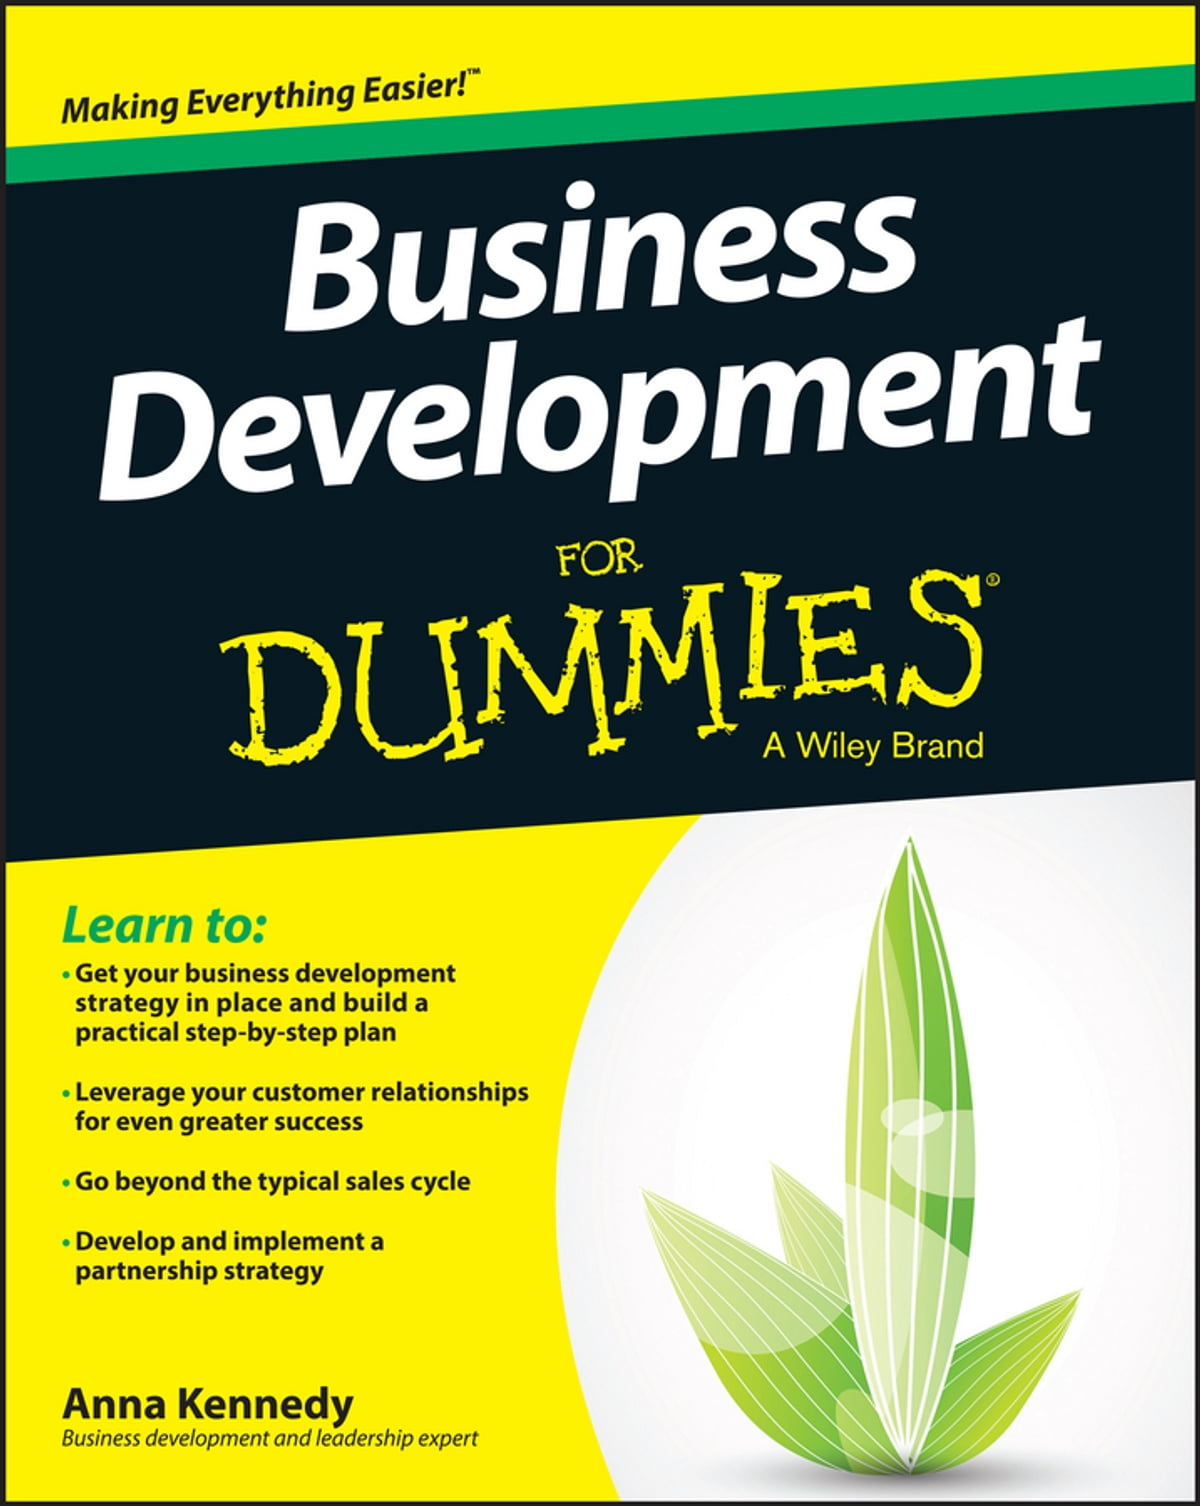 Understanding Why You Need Business Development